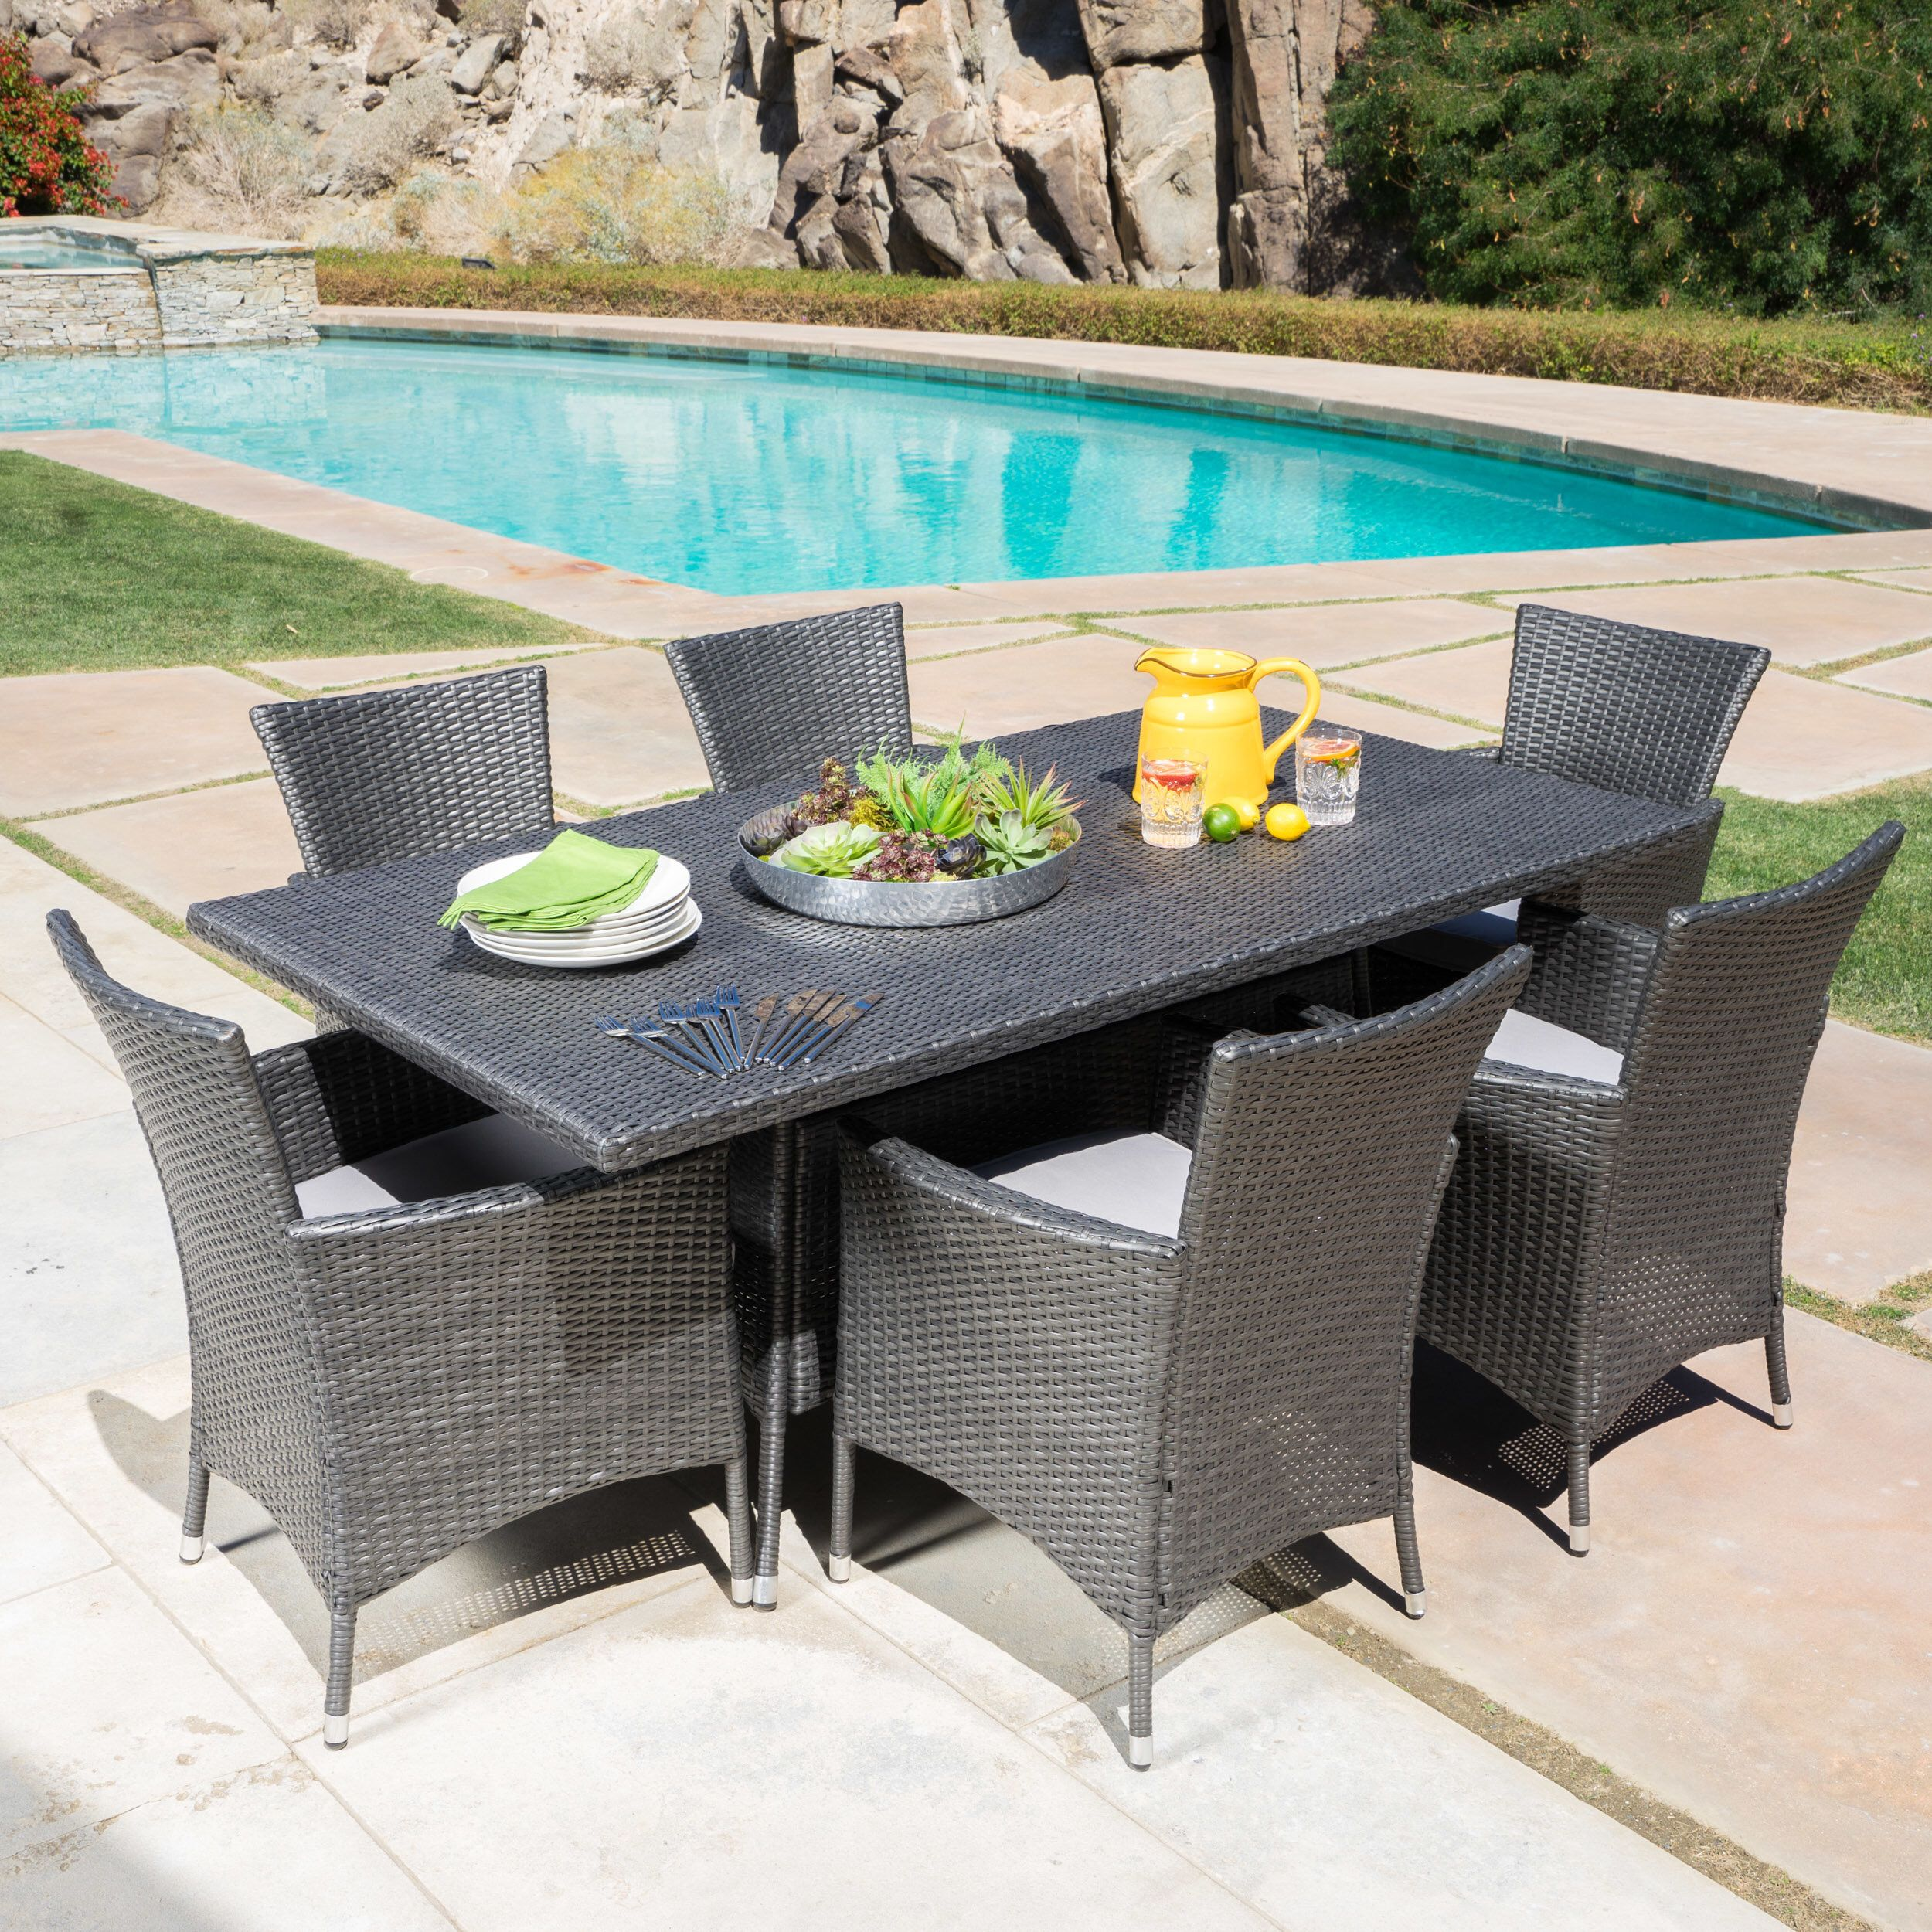 Bondy 7 Piece Dining Set With Cushions Wicker Dining Set Outdoor Table Settings Backyard Furniture